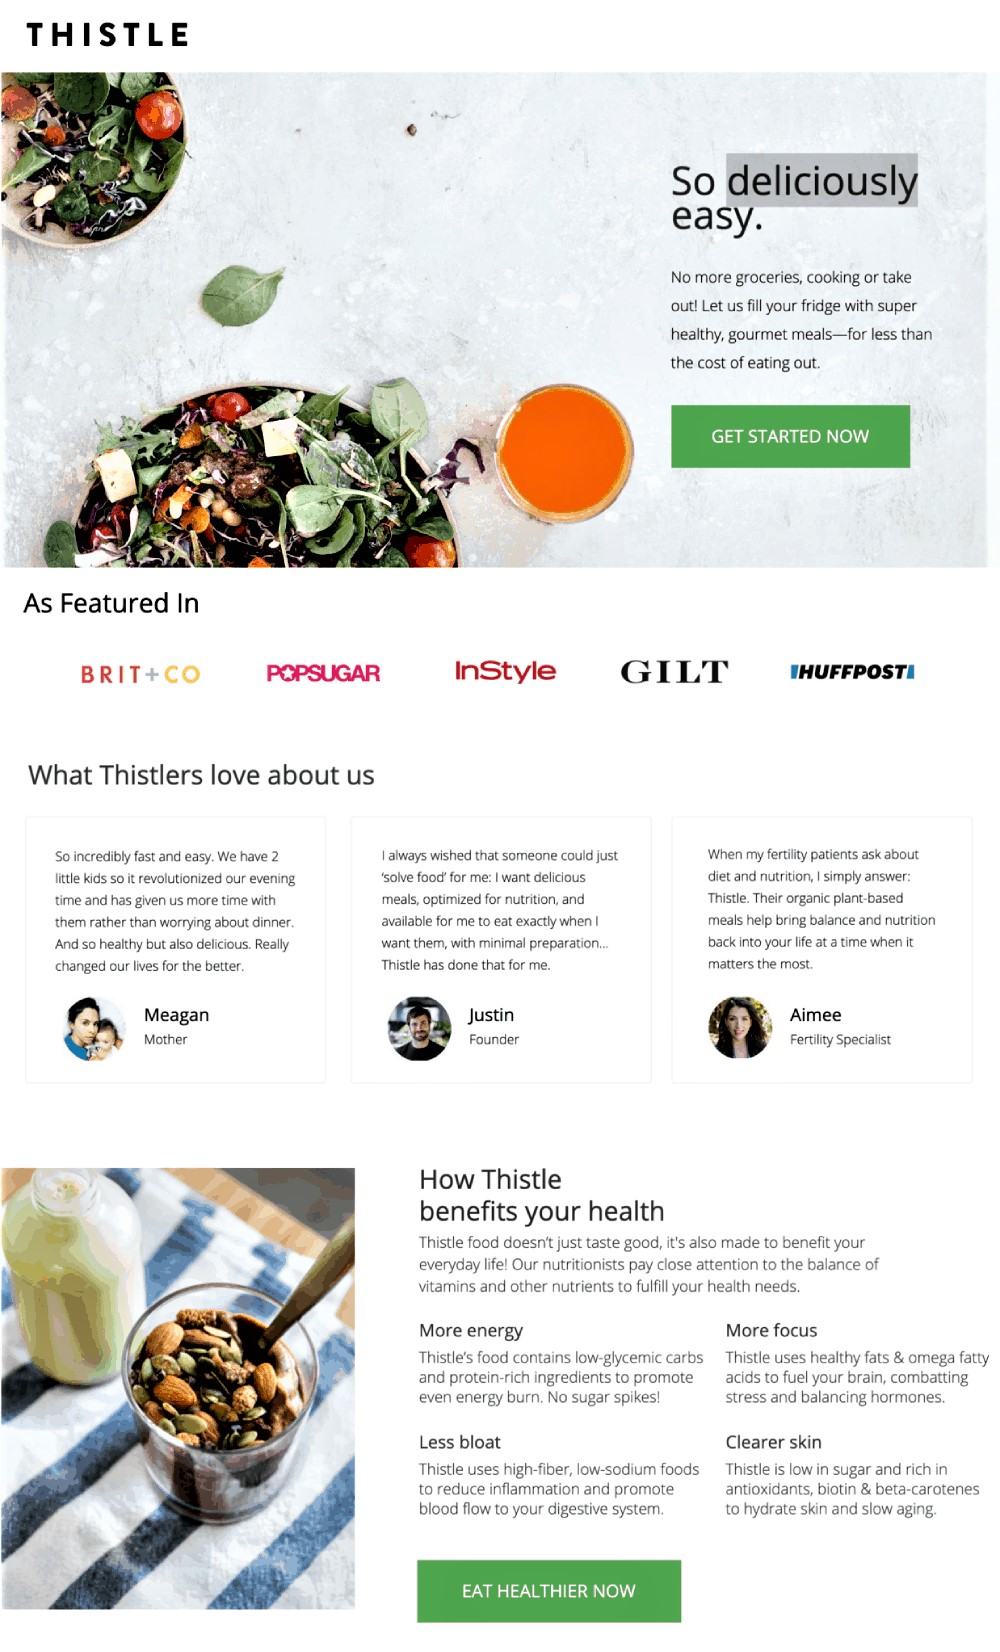 example of landing page optimization from thistle